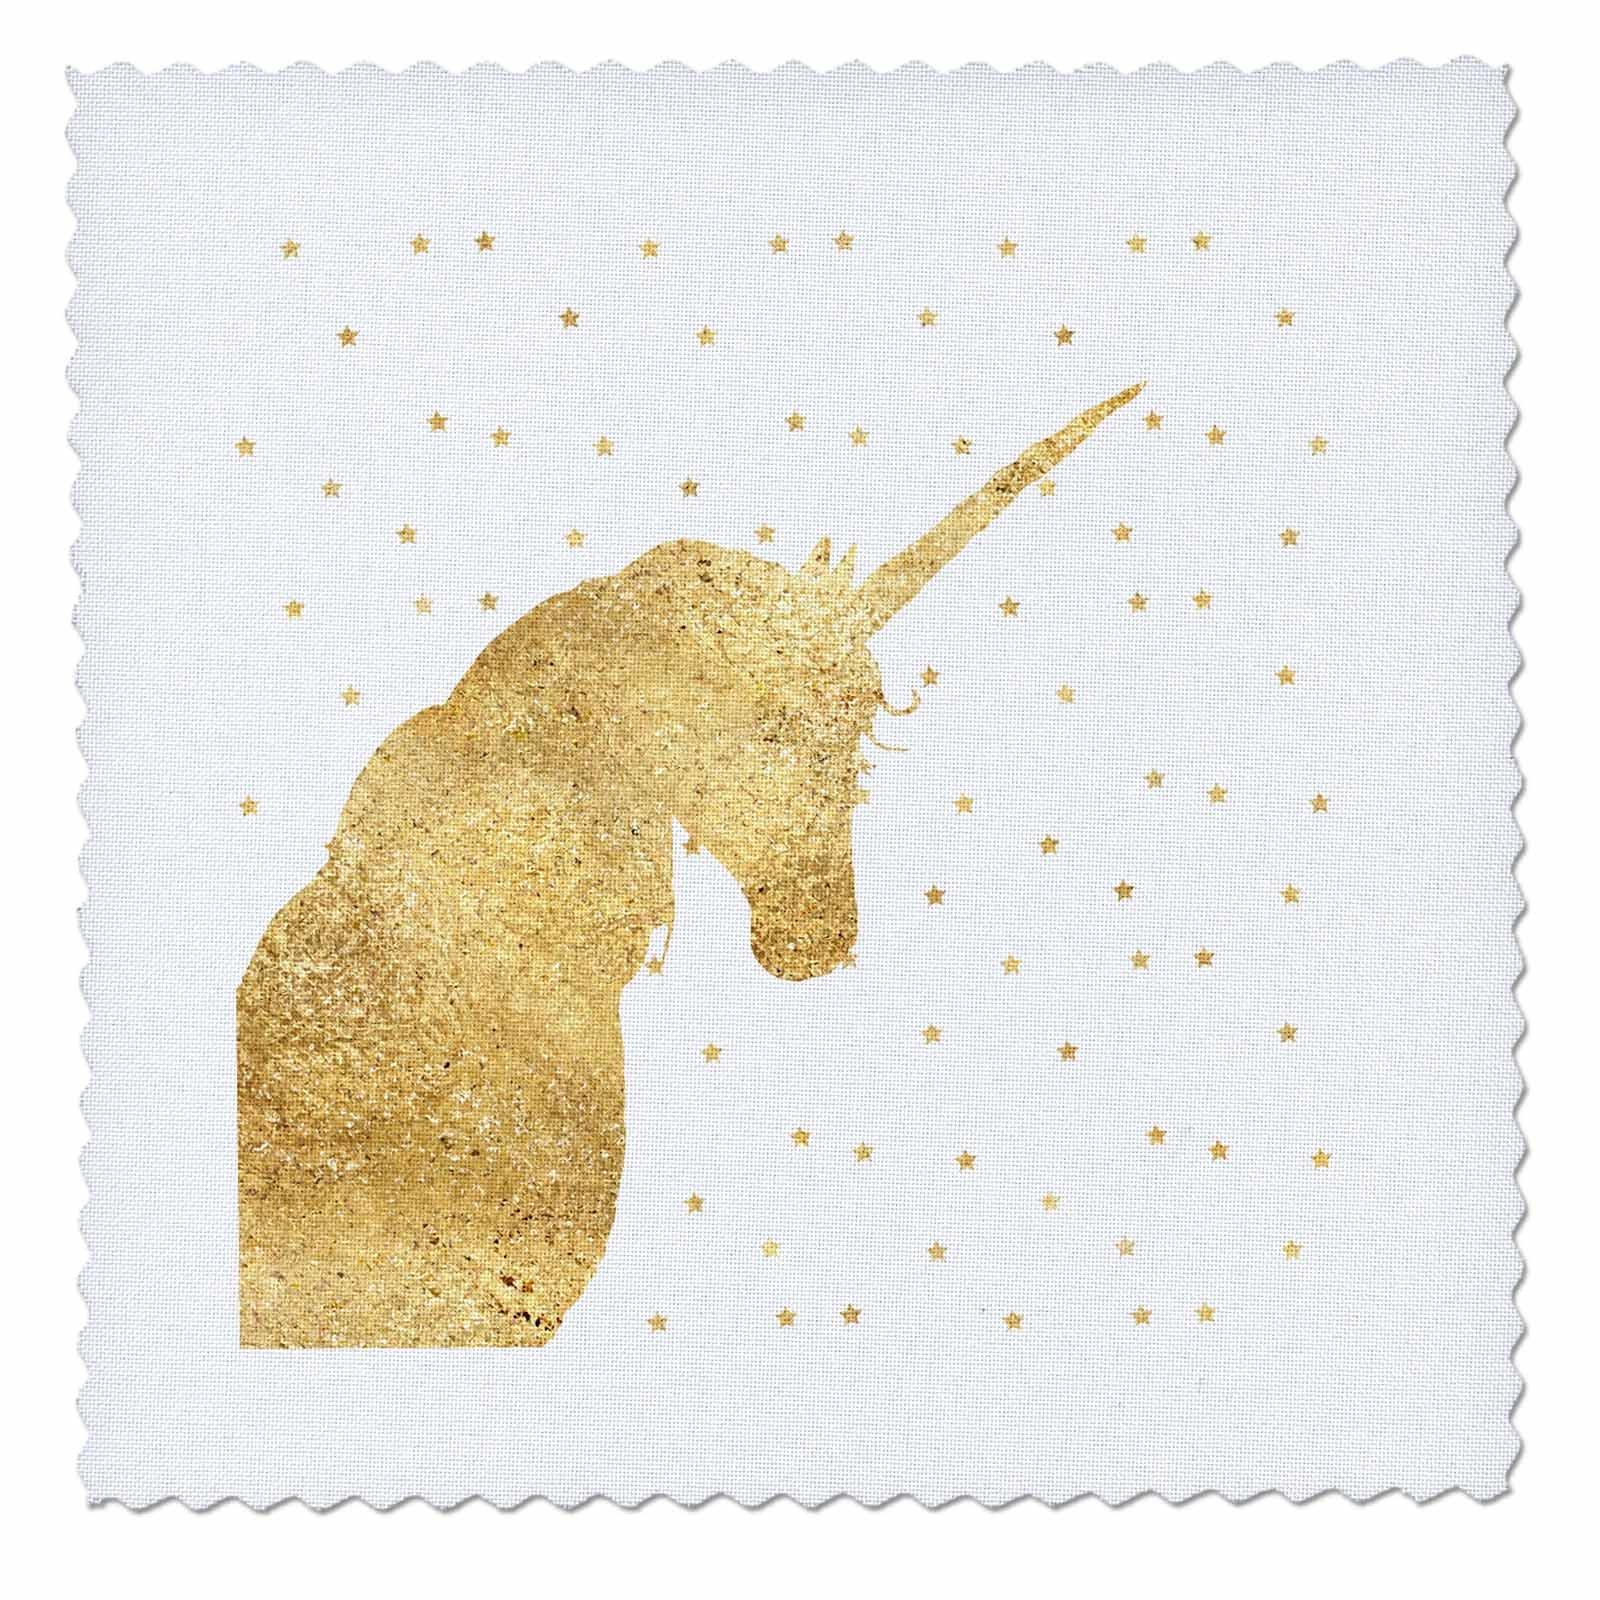 3dRose PS Animals - Image of Gold Stars Sparkle Unicorn - 25x25 inch quilt square (qs_280669_10)